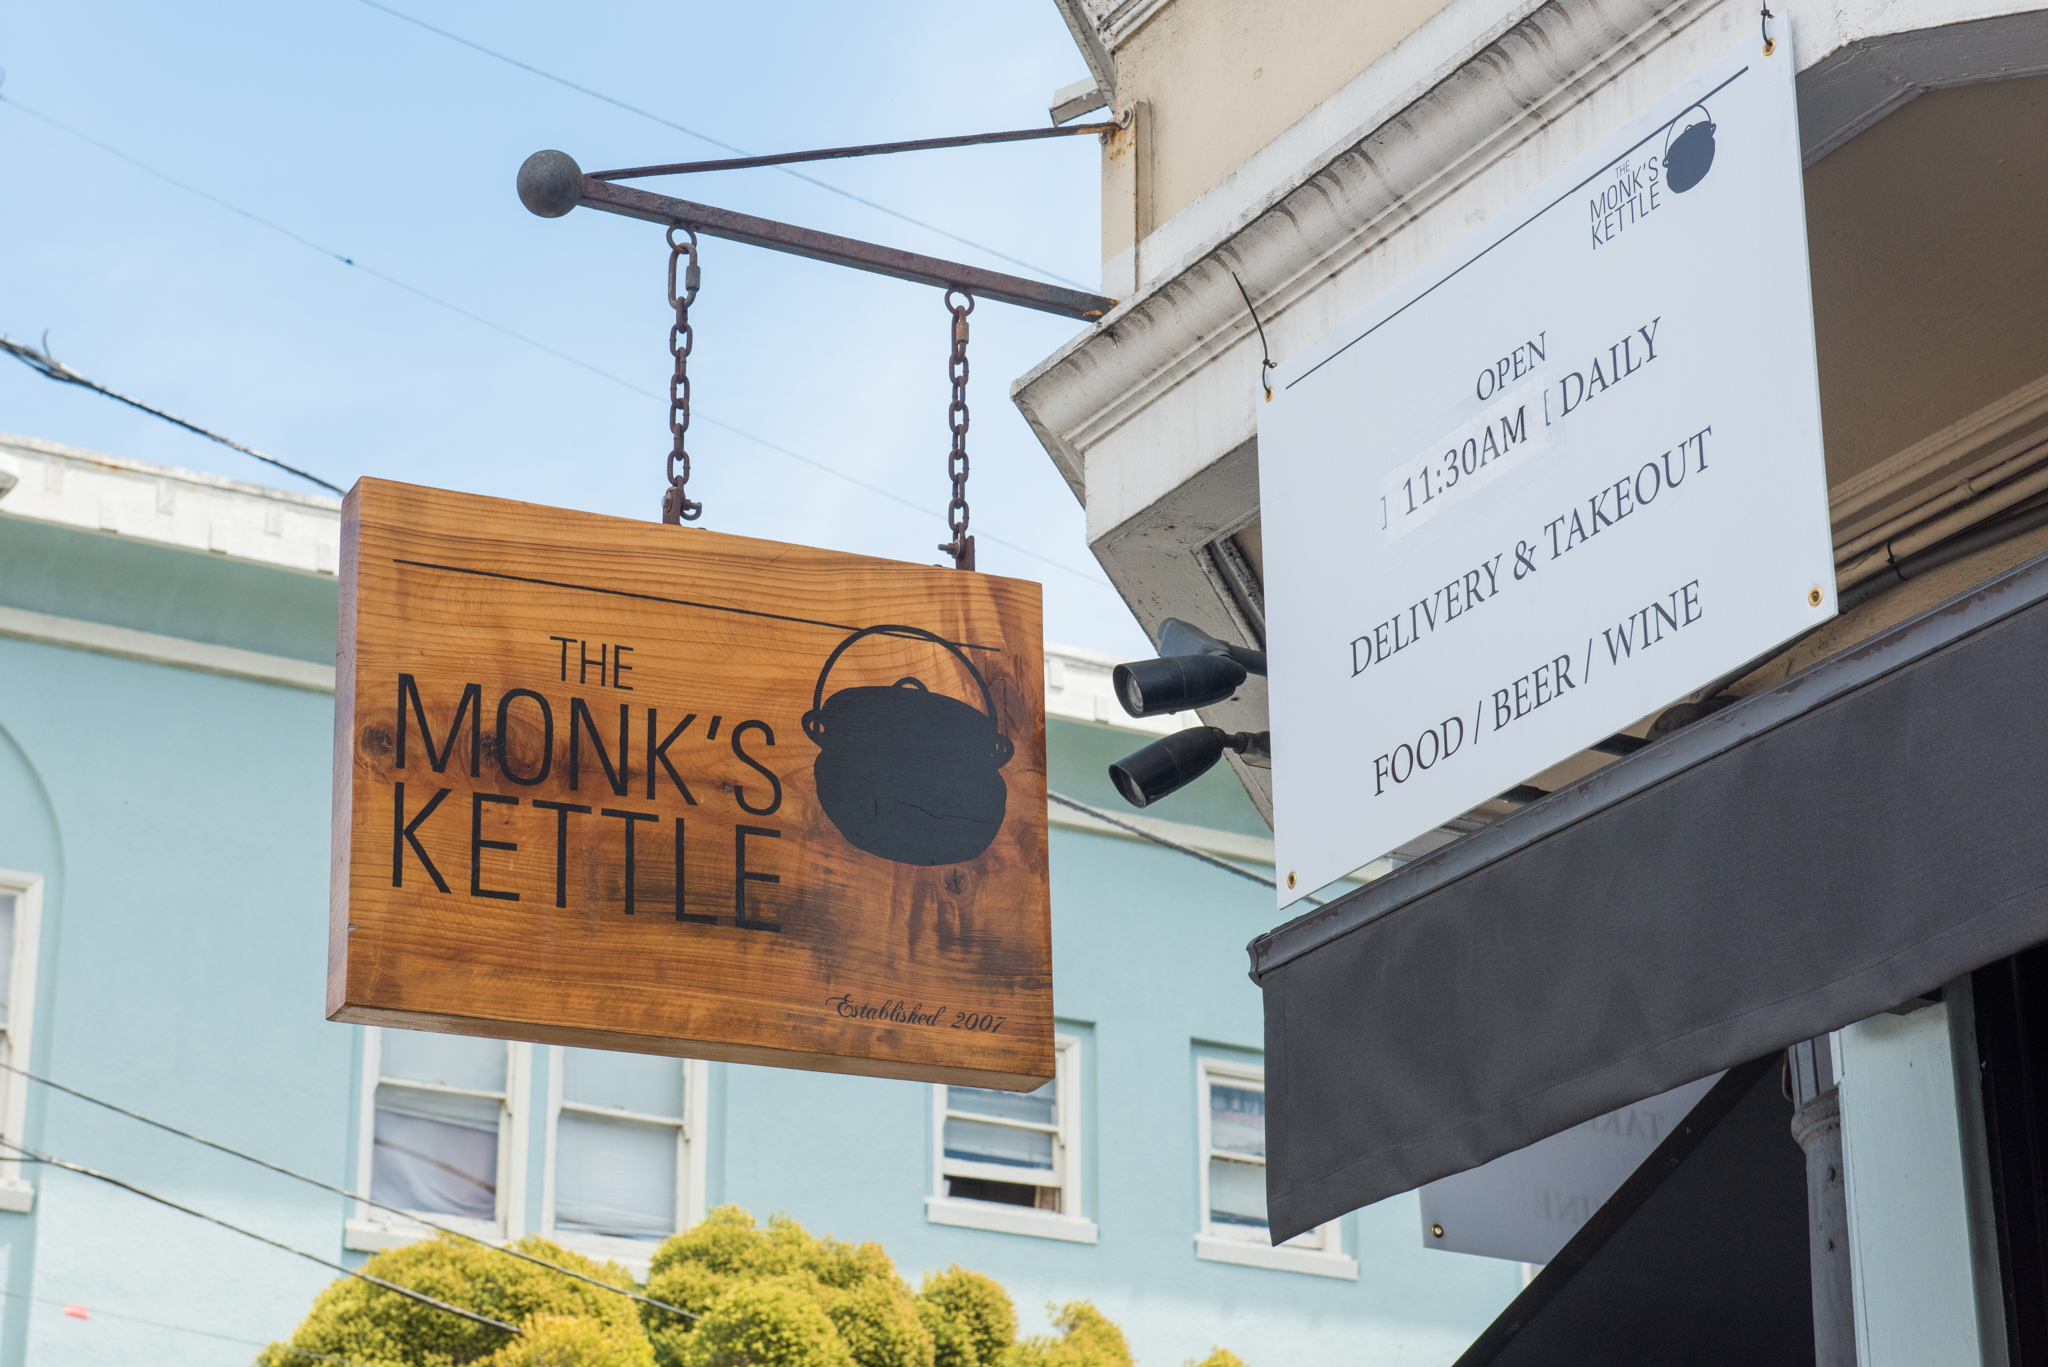 How SF Monk's Kettle Beer Bar Avoided Just-In-Time Bankruptcy With A PPP Loan